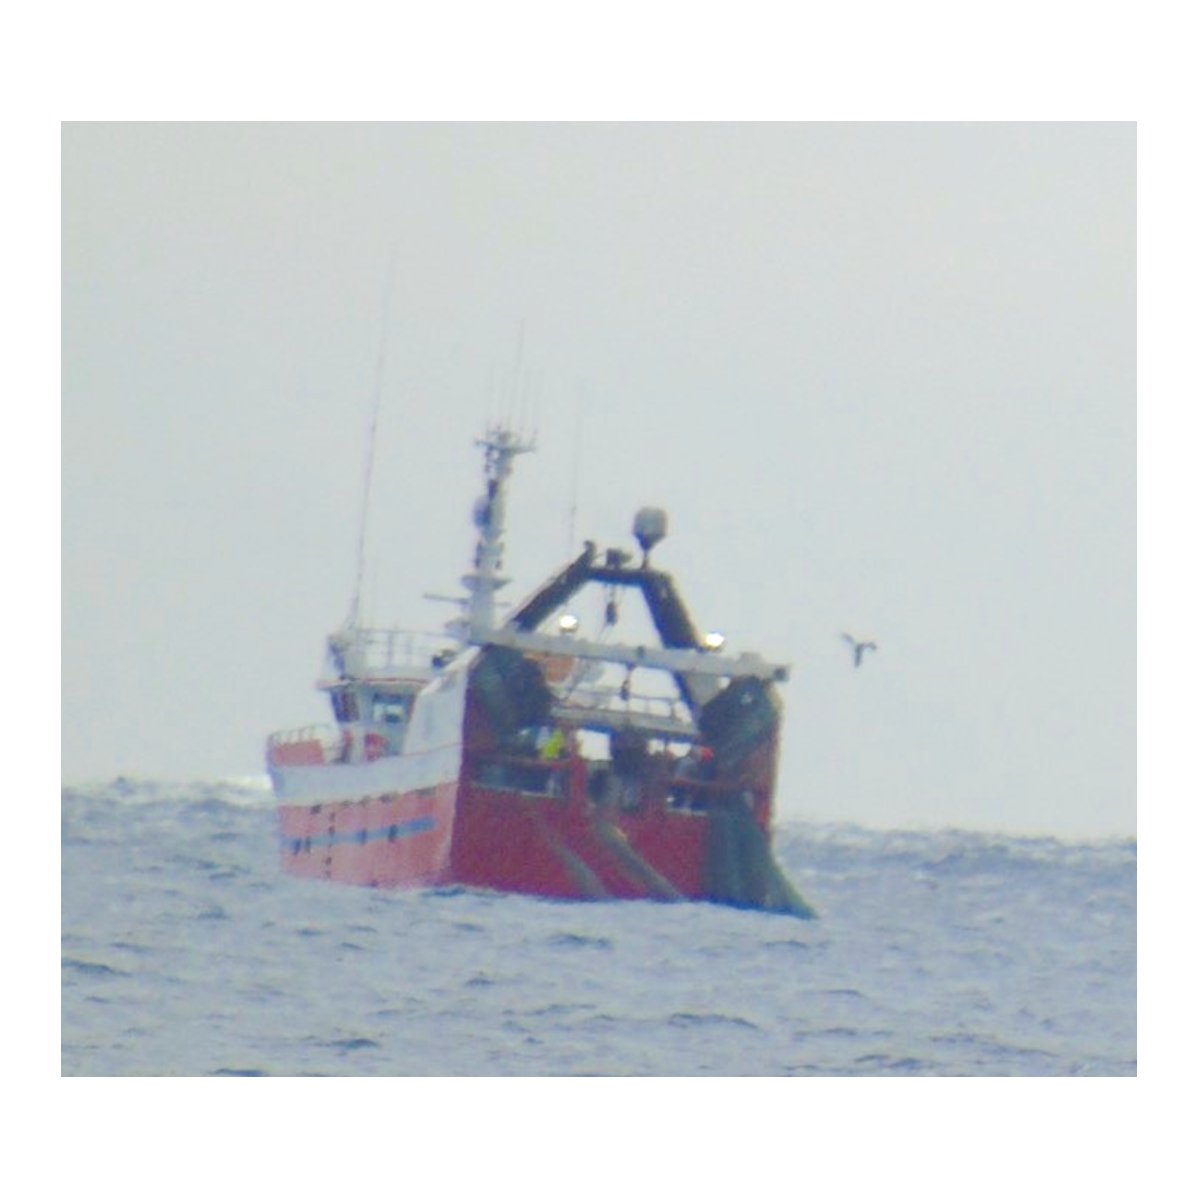 Danish Fisheries Association's Ole Lundberg Larsen claims that their members have not been operating illegal multi-rig gear in Scottish waters